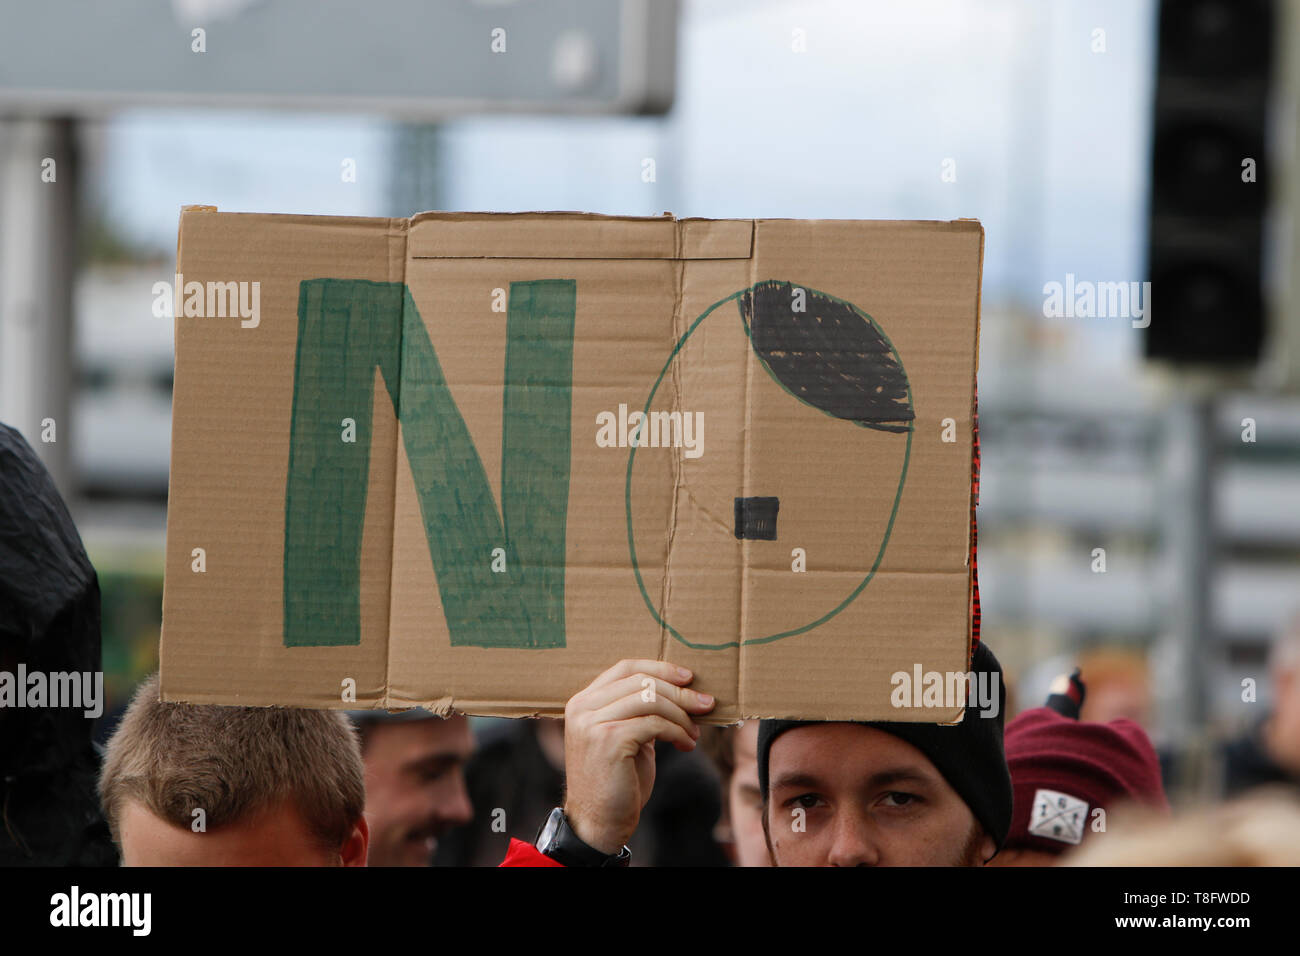 Pforzheim, Germany. 11th May, 2019. A protester holds a sign that reads 'No'. The O looks like a stylised Hitler. Around 80 people participated in a march through Pforzheim, organised by the right-wing party 'Die Rechte' (The Right). The main issues of the march was the promotion of voting for Die Rechte' in the upcoming European Election and their anti-immigration policies. They were confronted by several hundred counter-protesters from different political organisations. Credit: Michael Debets/Pacific Press/Alamy Live News - Stock Image